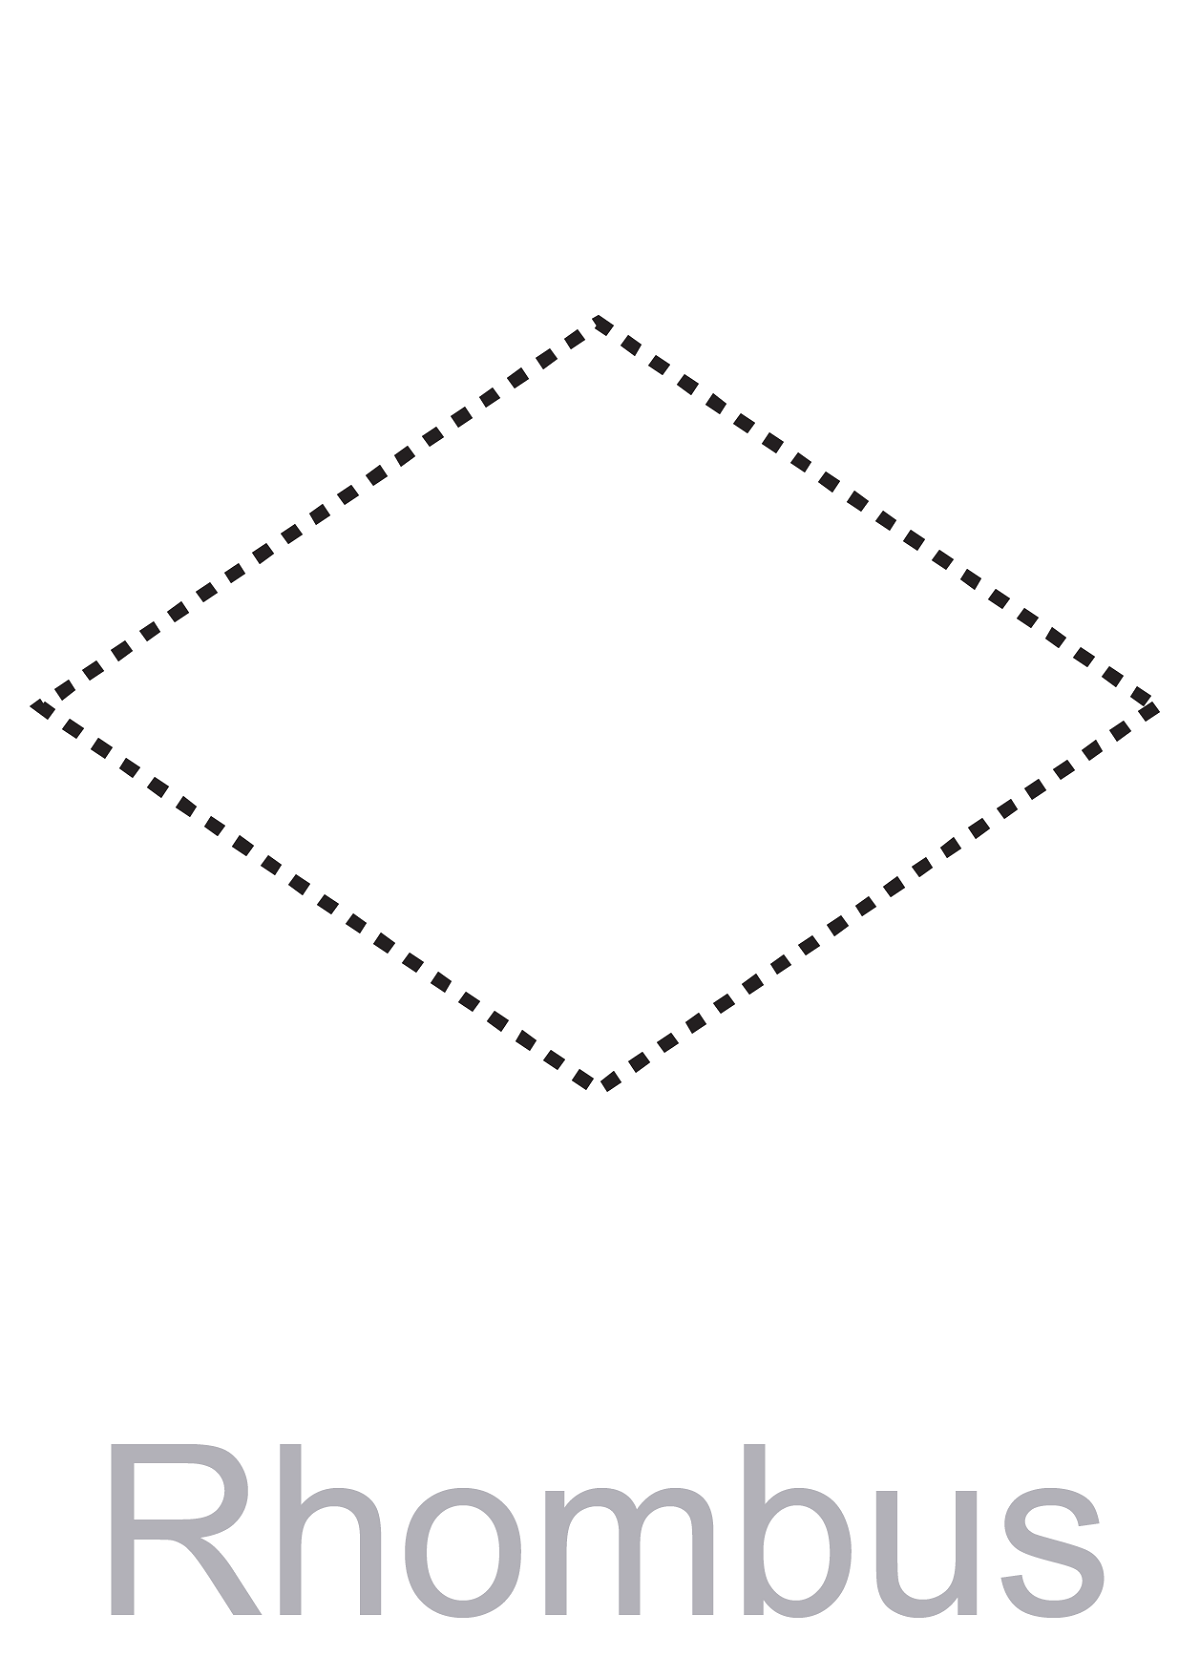 Pictures Of Rhombus Shapes Blank